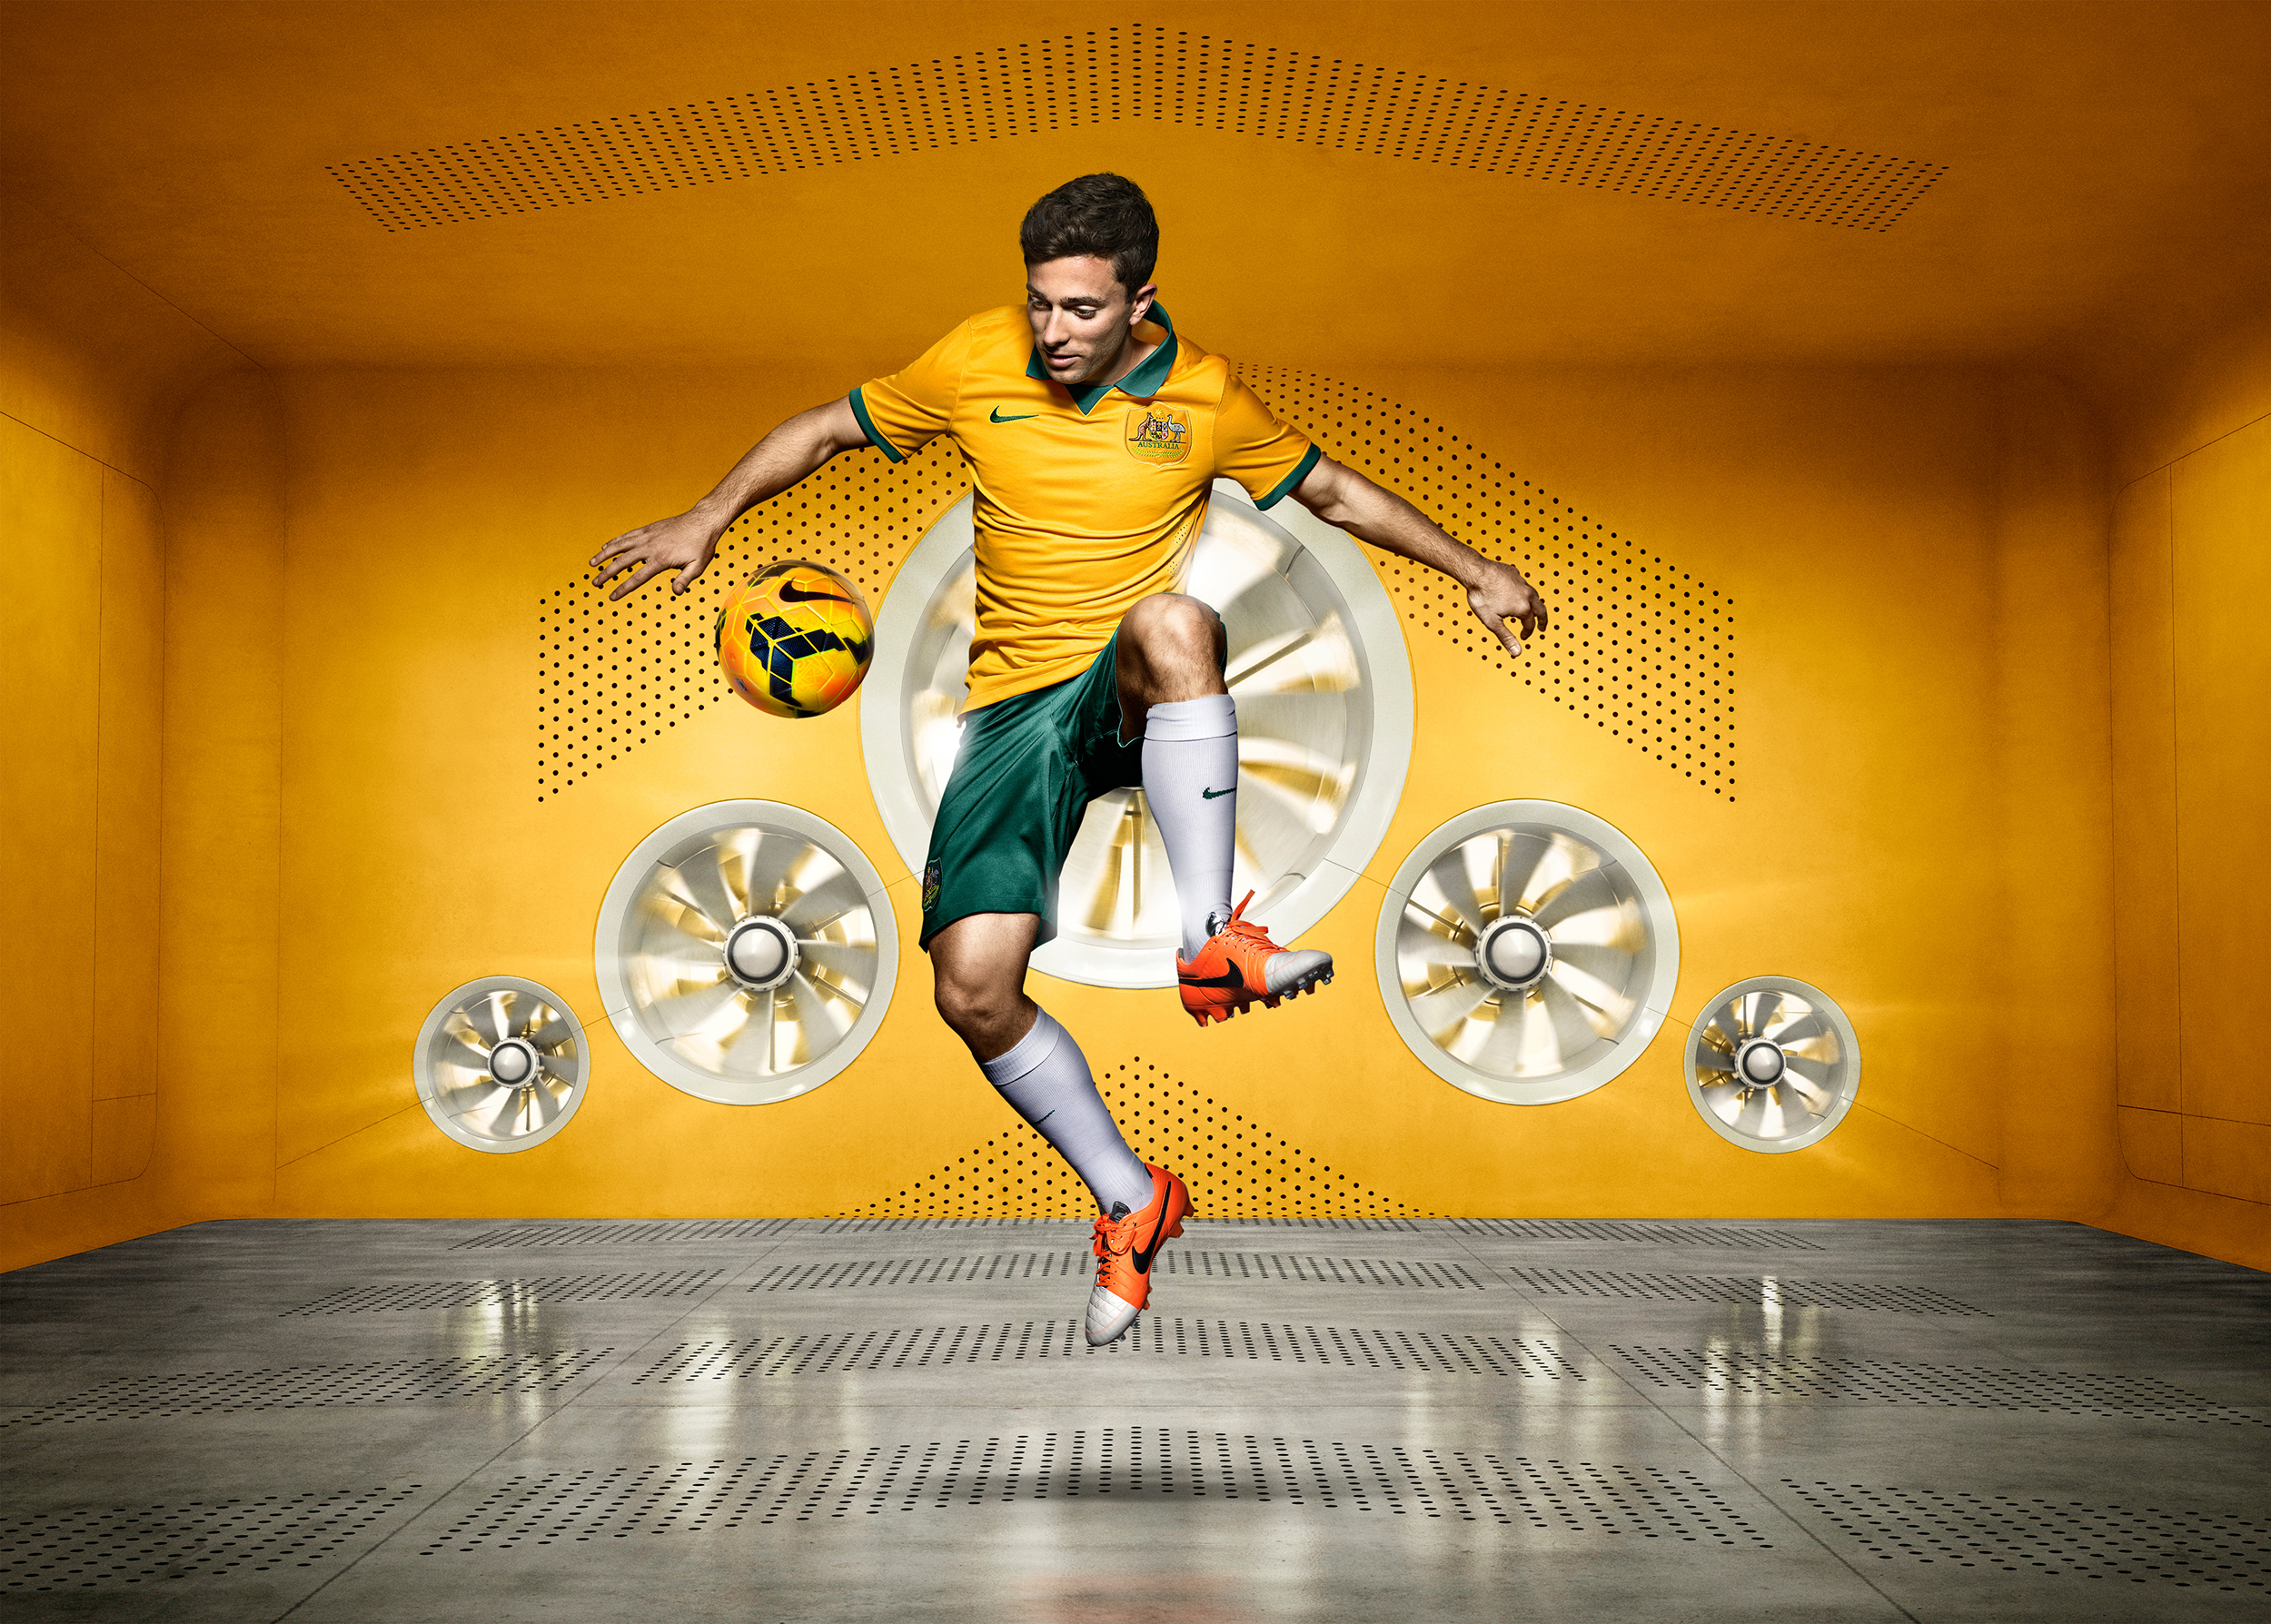 nike-thom-rigney-professional-photographer-tommy-oar-socceroos-football-kit